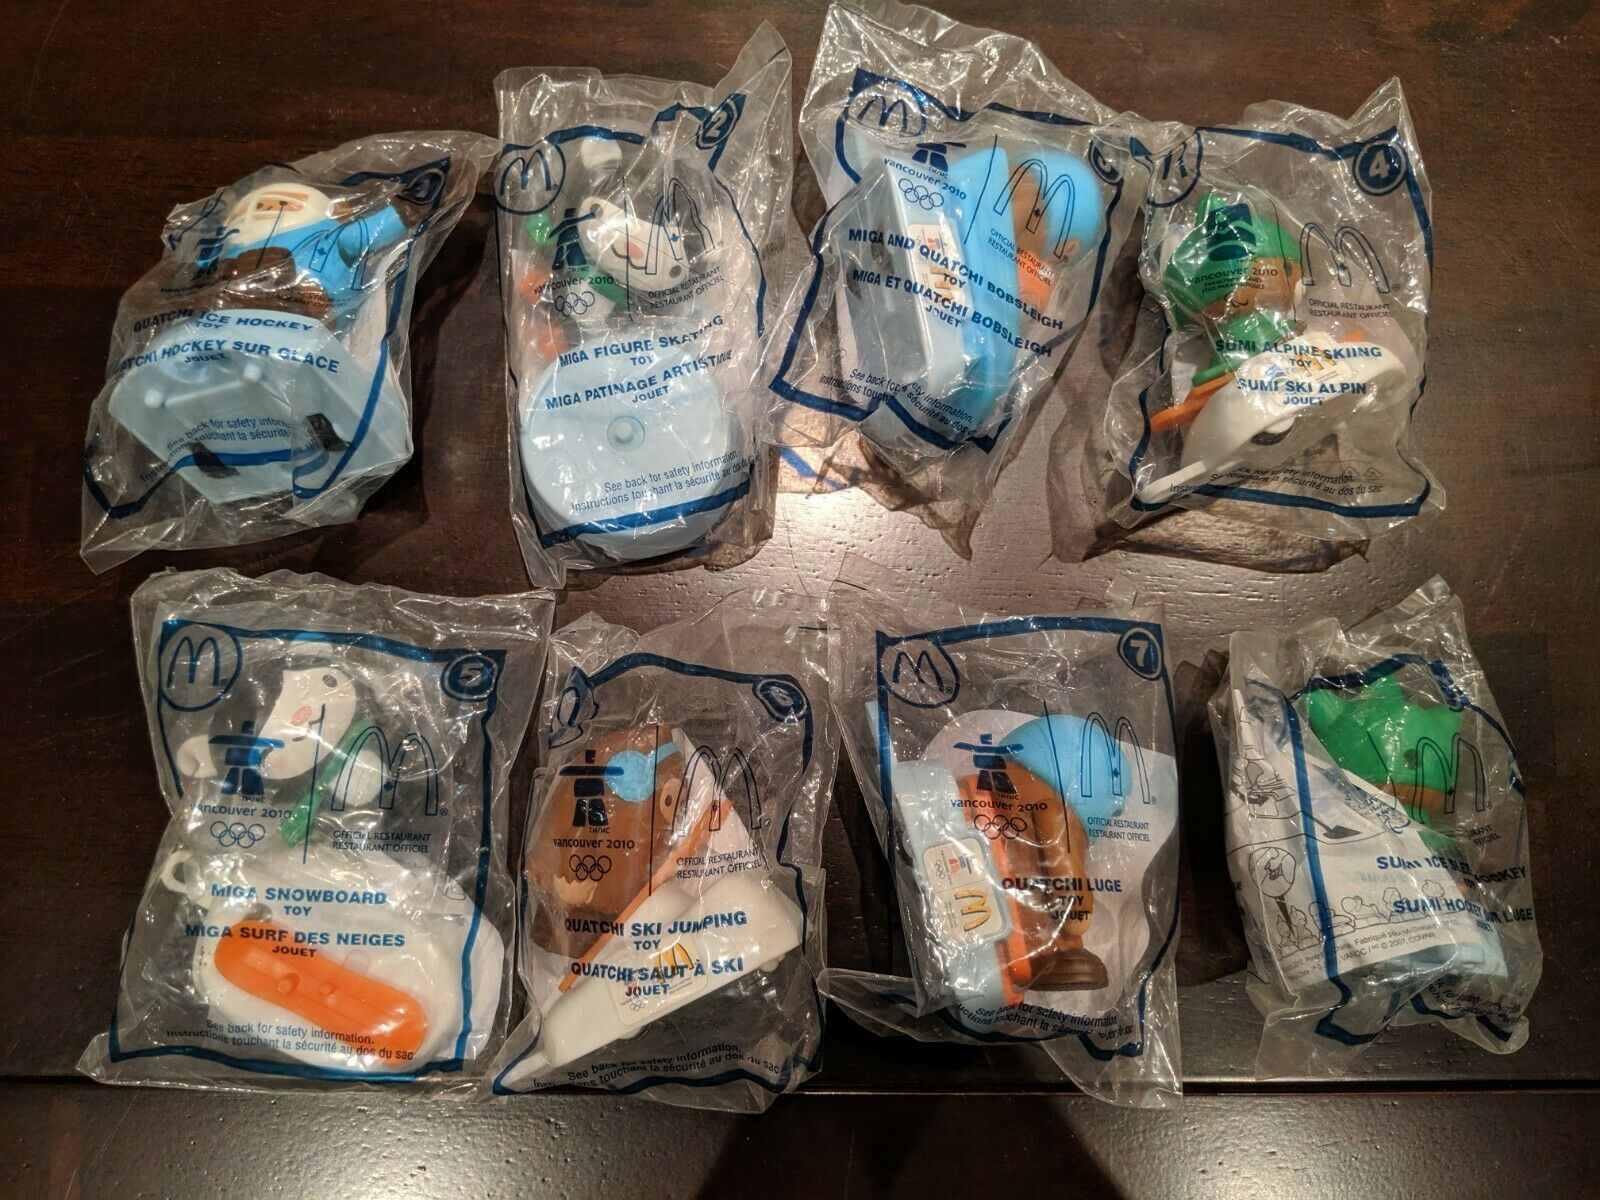 Mcdonalds Toys Vancouver 2010 Winter Olympics Set of 8 Sealed